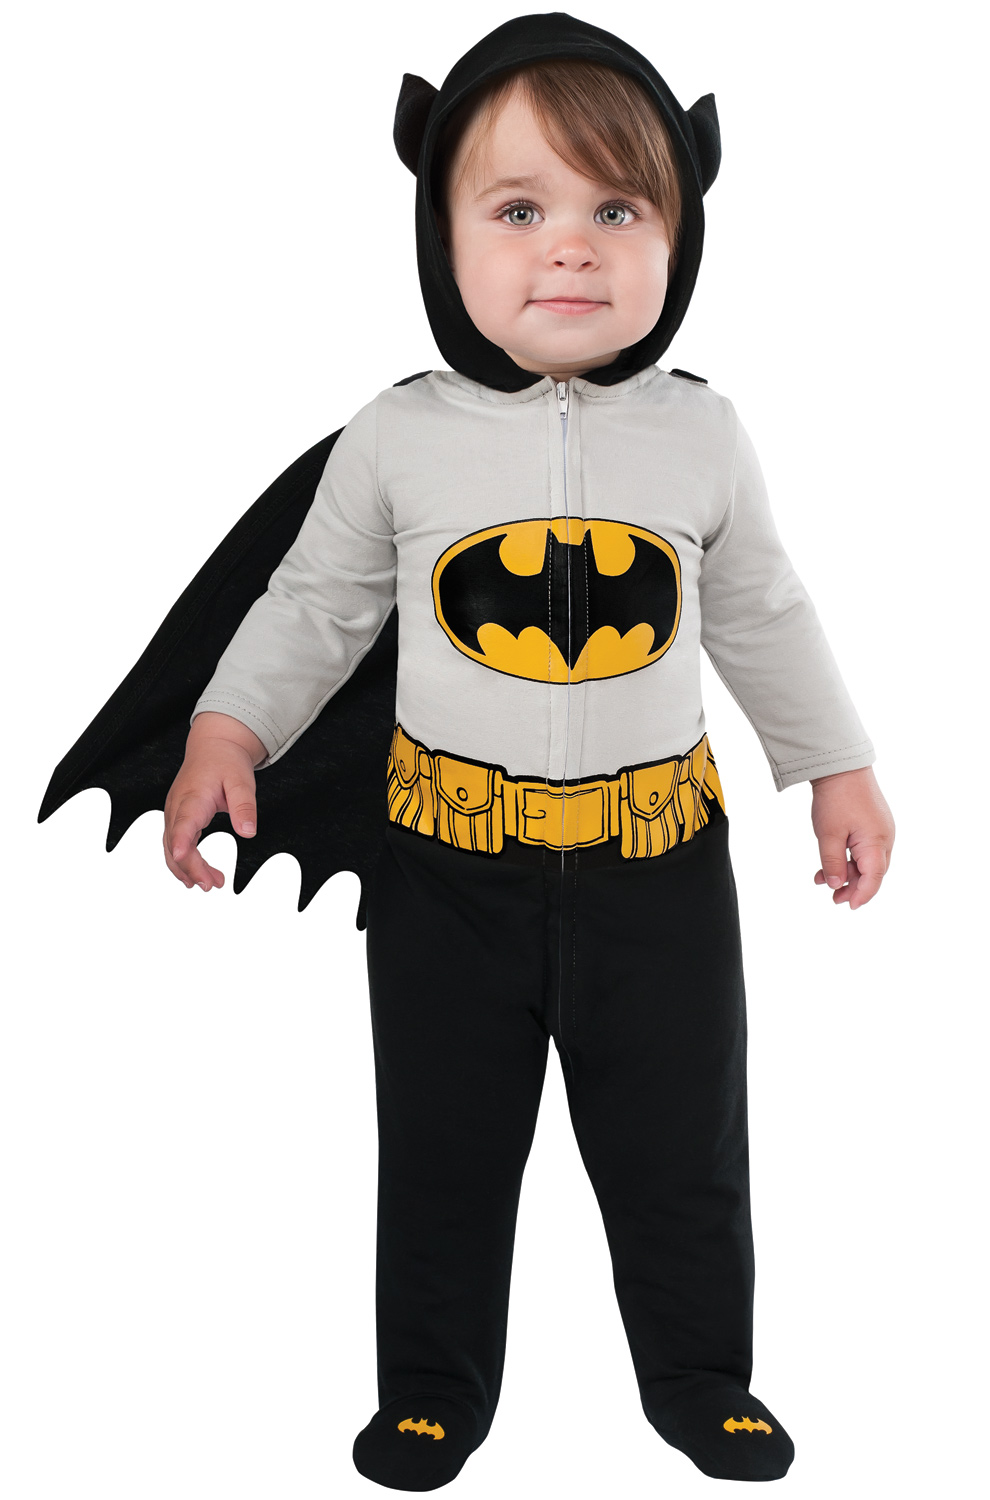 Find great deals on eBay for Baby Batman Costume in Infant and Toddler Theater and Reenactment Costumes. Shop with confidence. Find great deals on eBay for Baby Batman Costume in Infant and Toddler Theater and Reenactment Costumes. Batman Halloween Costume One Piece Baby Boy/girl Size 0/3 Mo Months Camo Black. $ 0 bids.